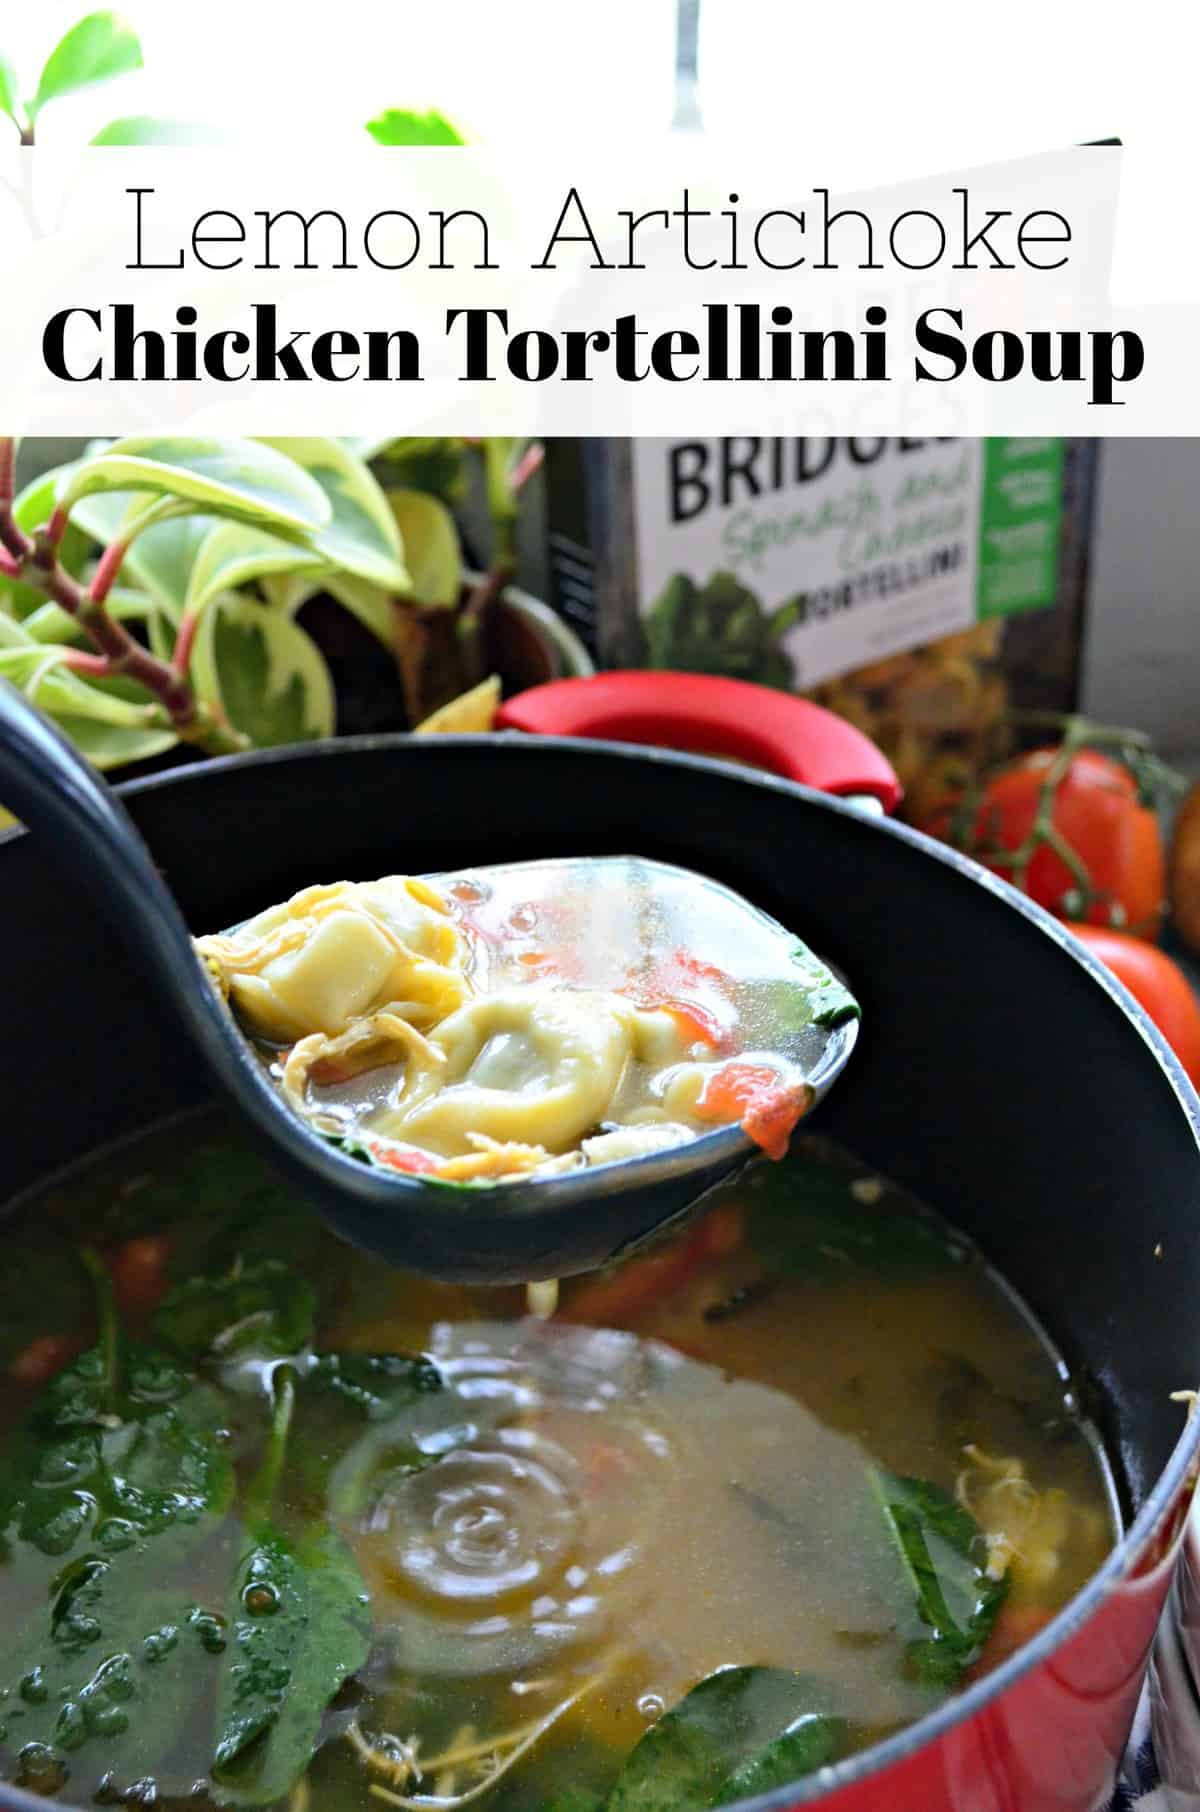 spinach, tomato, chicken, and broth in ladle held over pot of soup with title text.